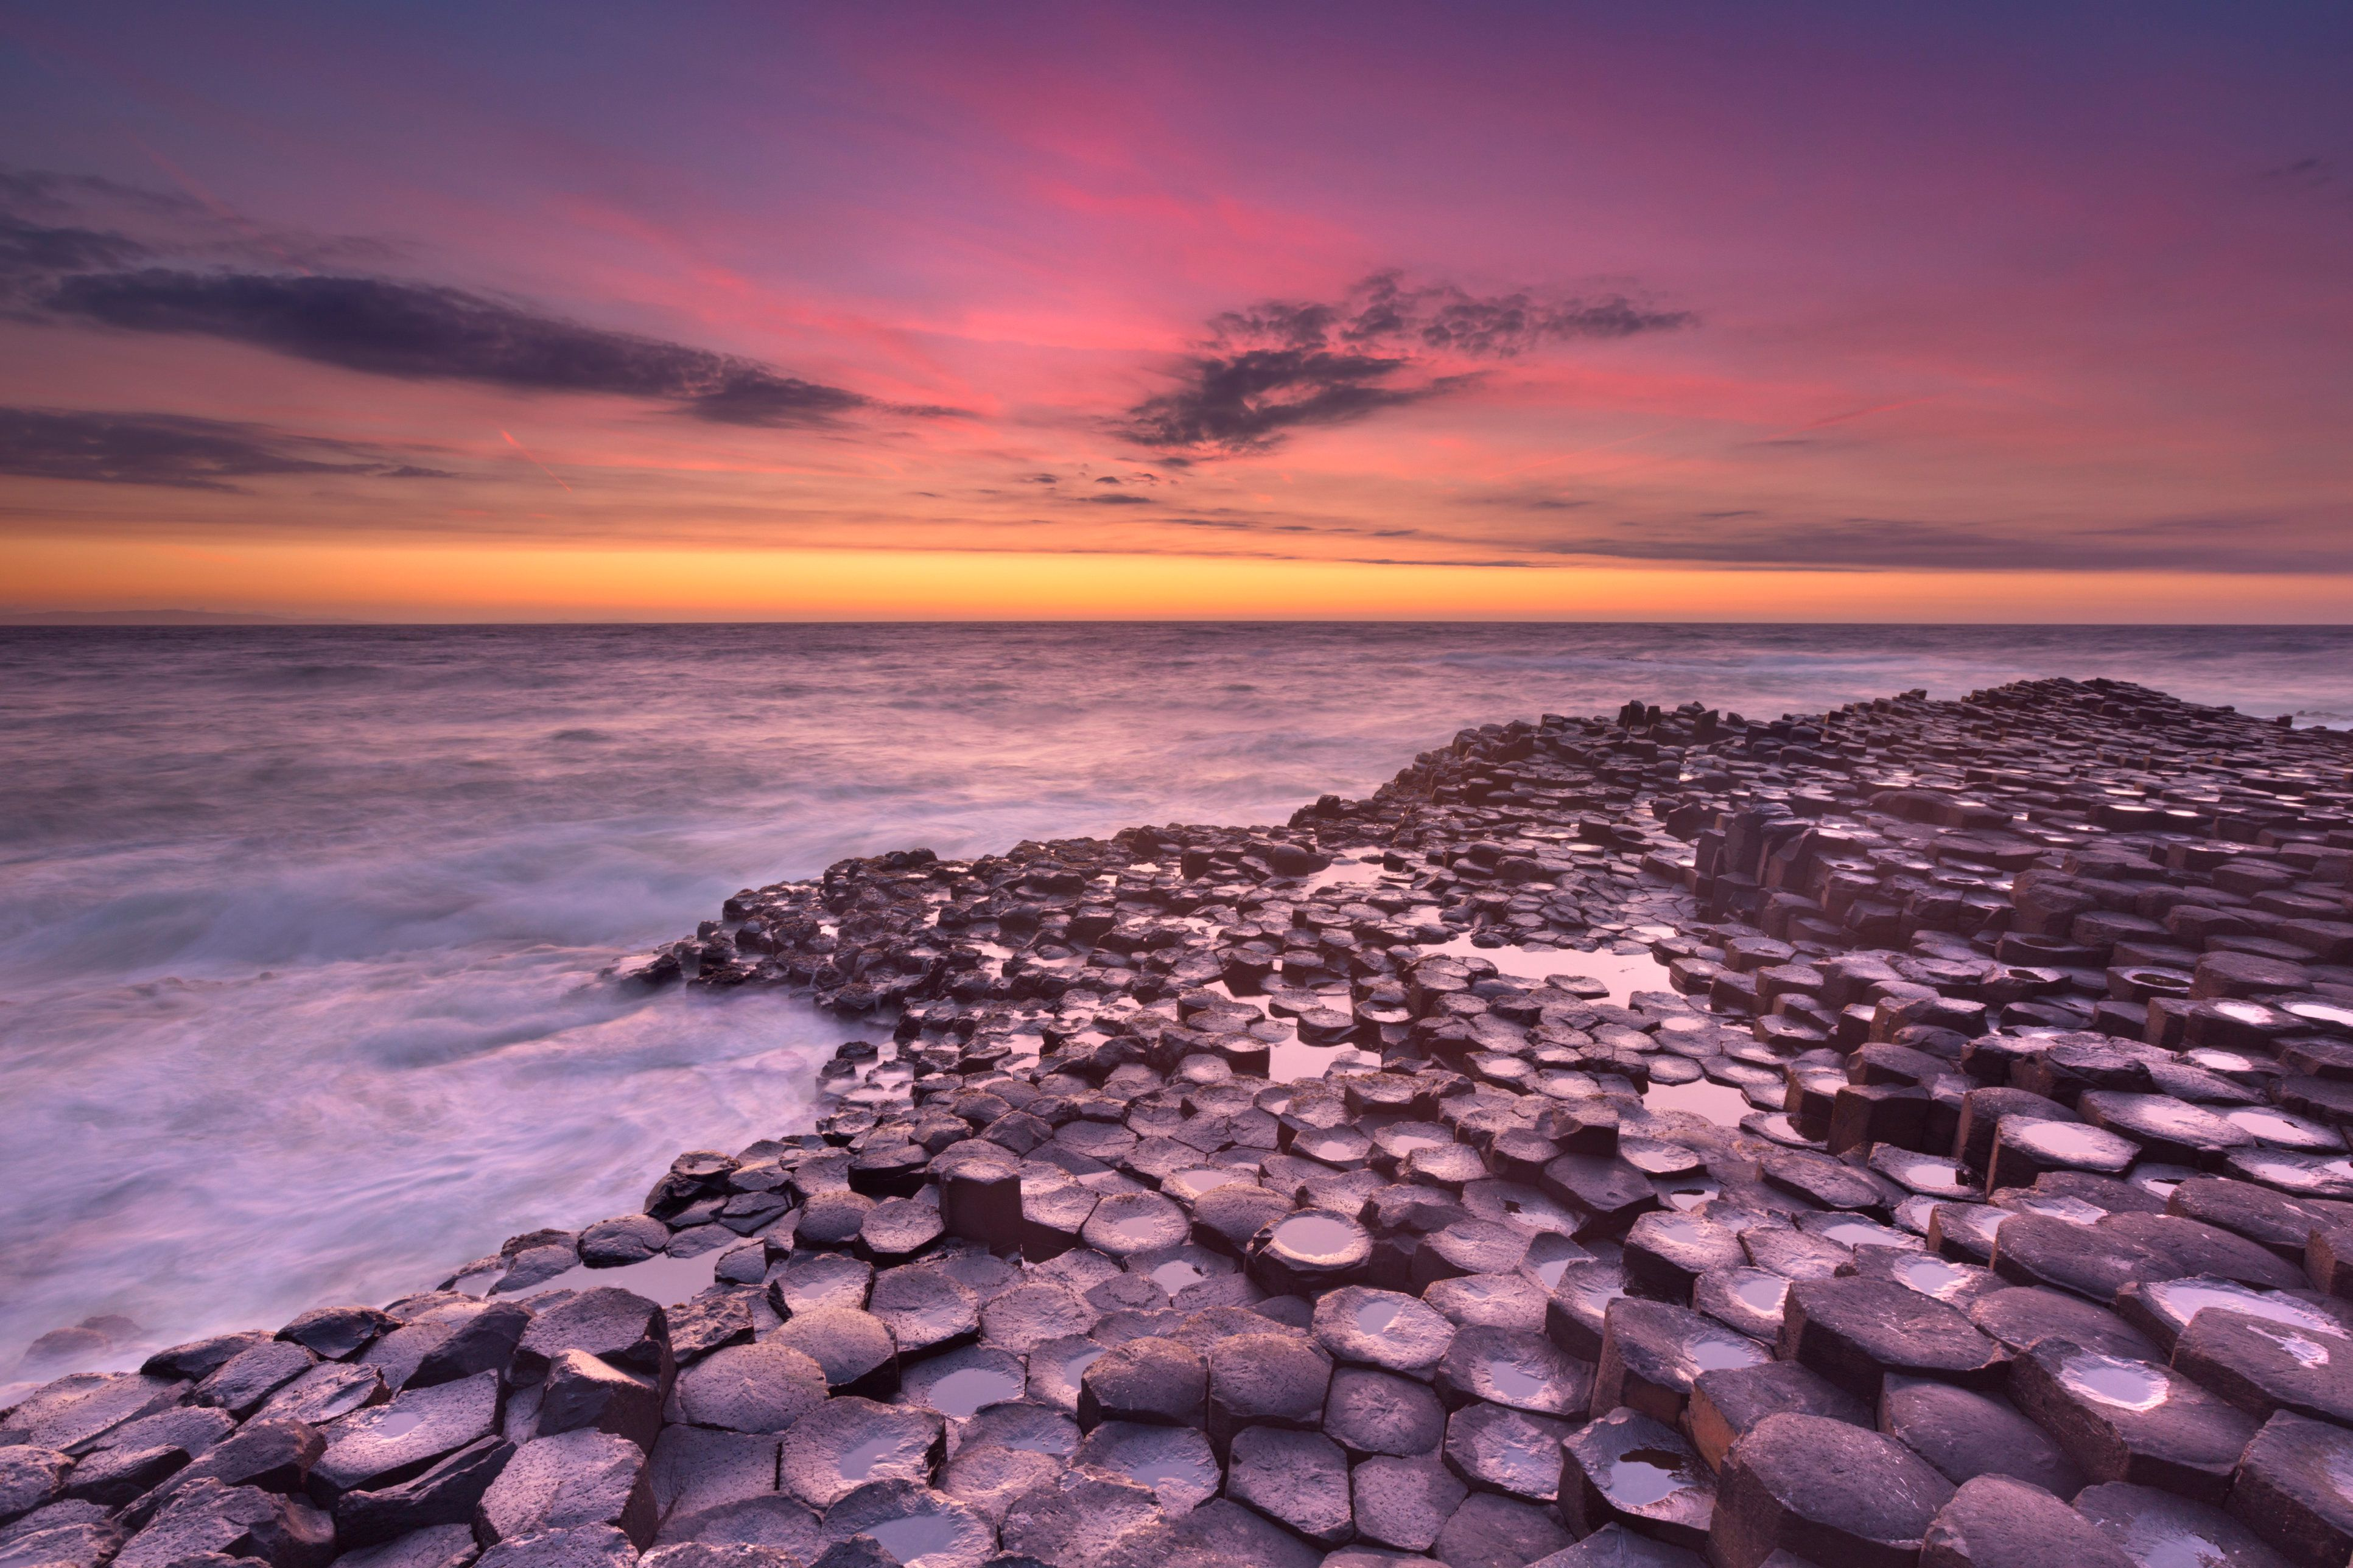 Sunset over the basalt rock formations of Giant's Causeway.